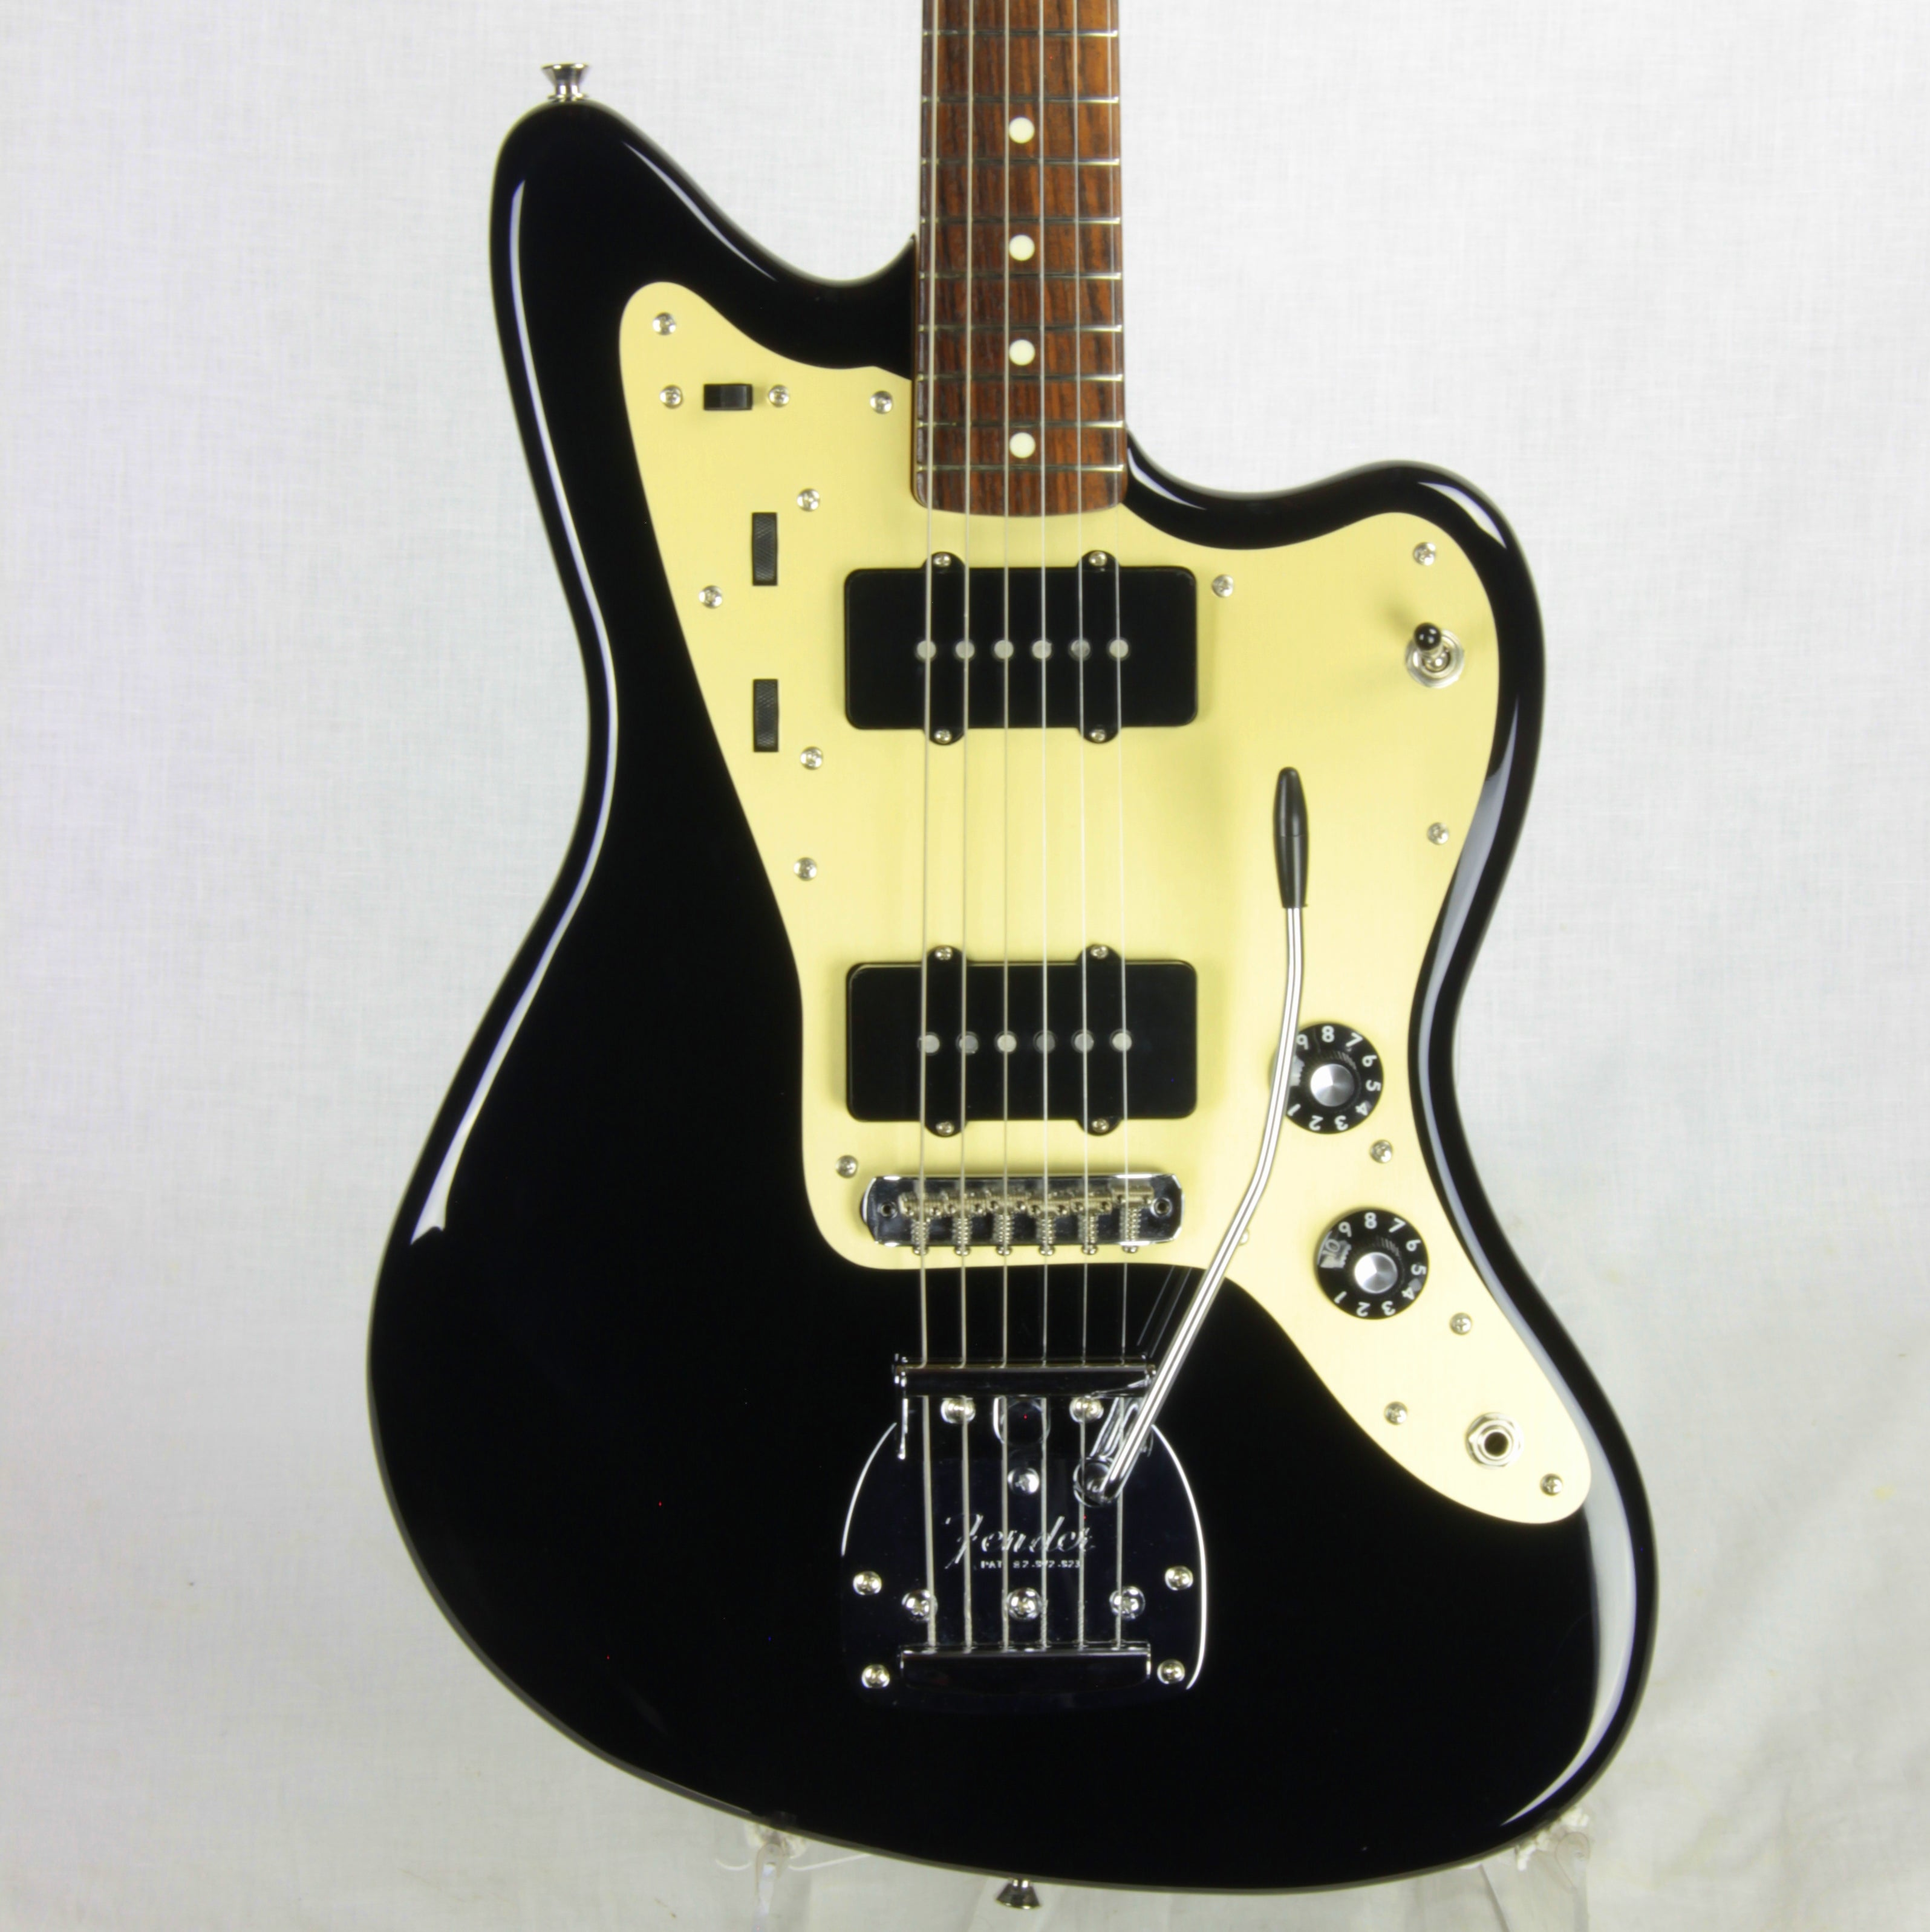 Fender Japan INORAN '59 Reissue Jazzmaster Black Anodized Guard! '65 USA American Vintage Pickups! MIJ JD